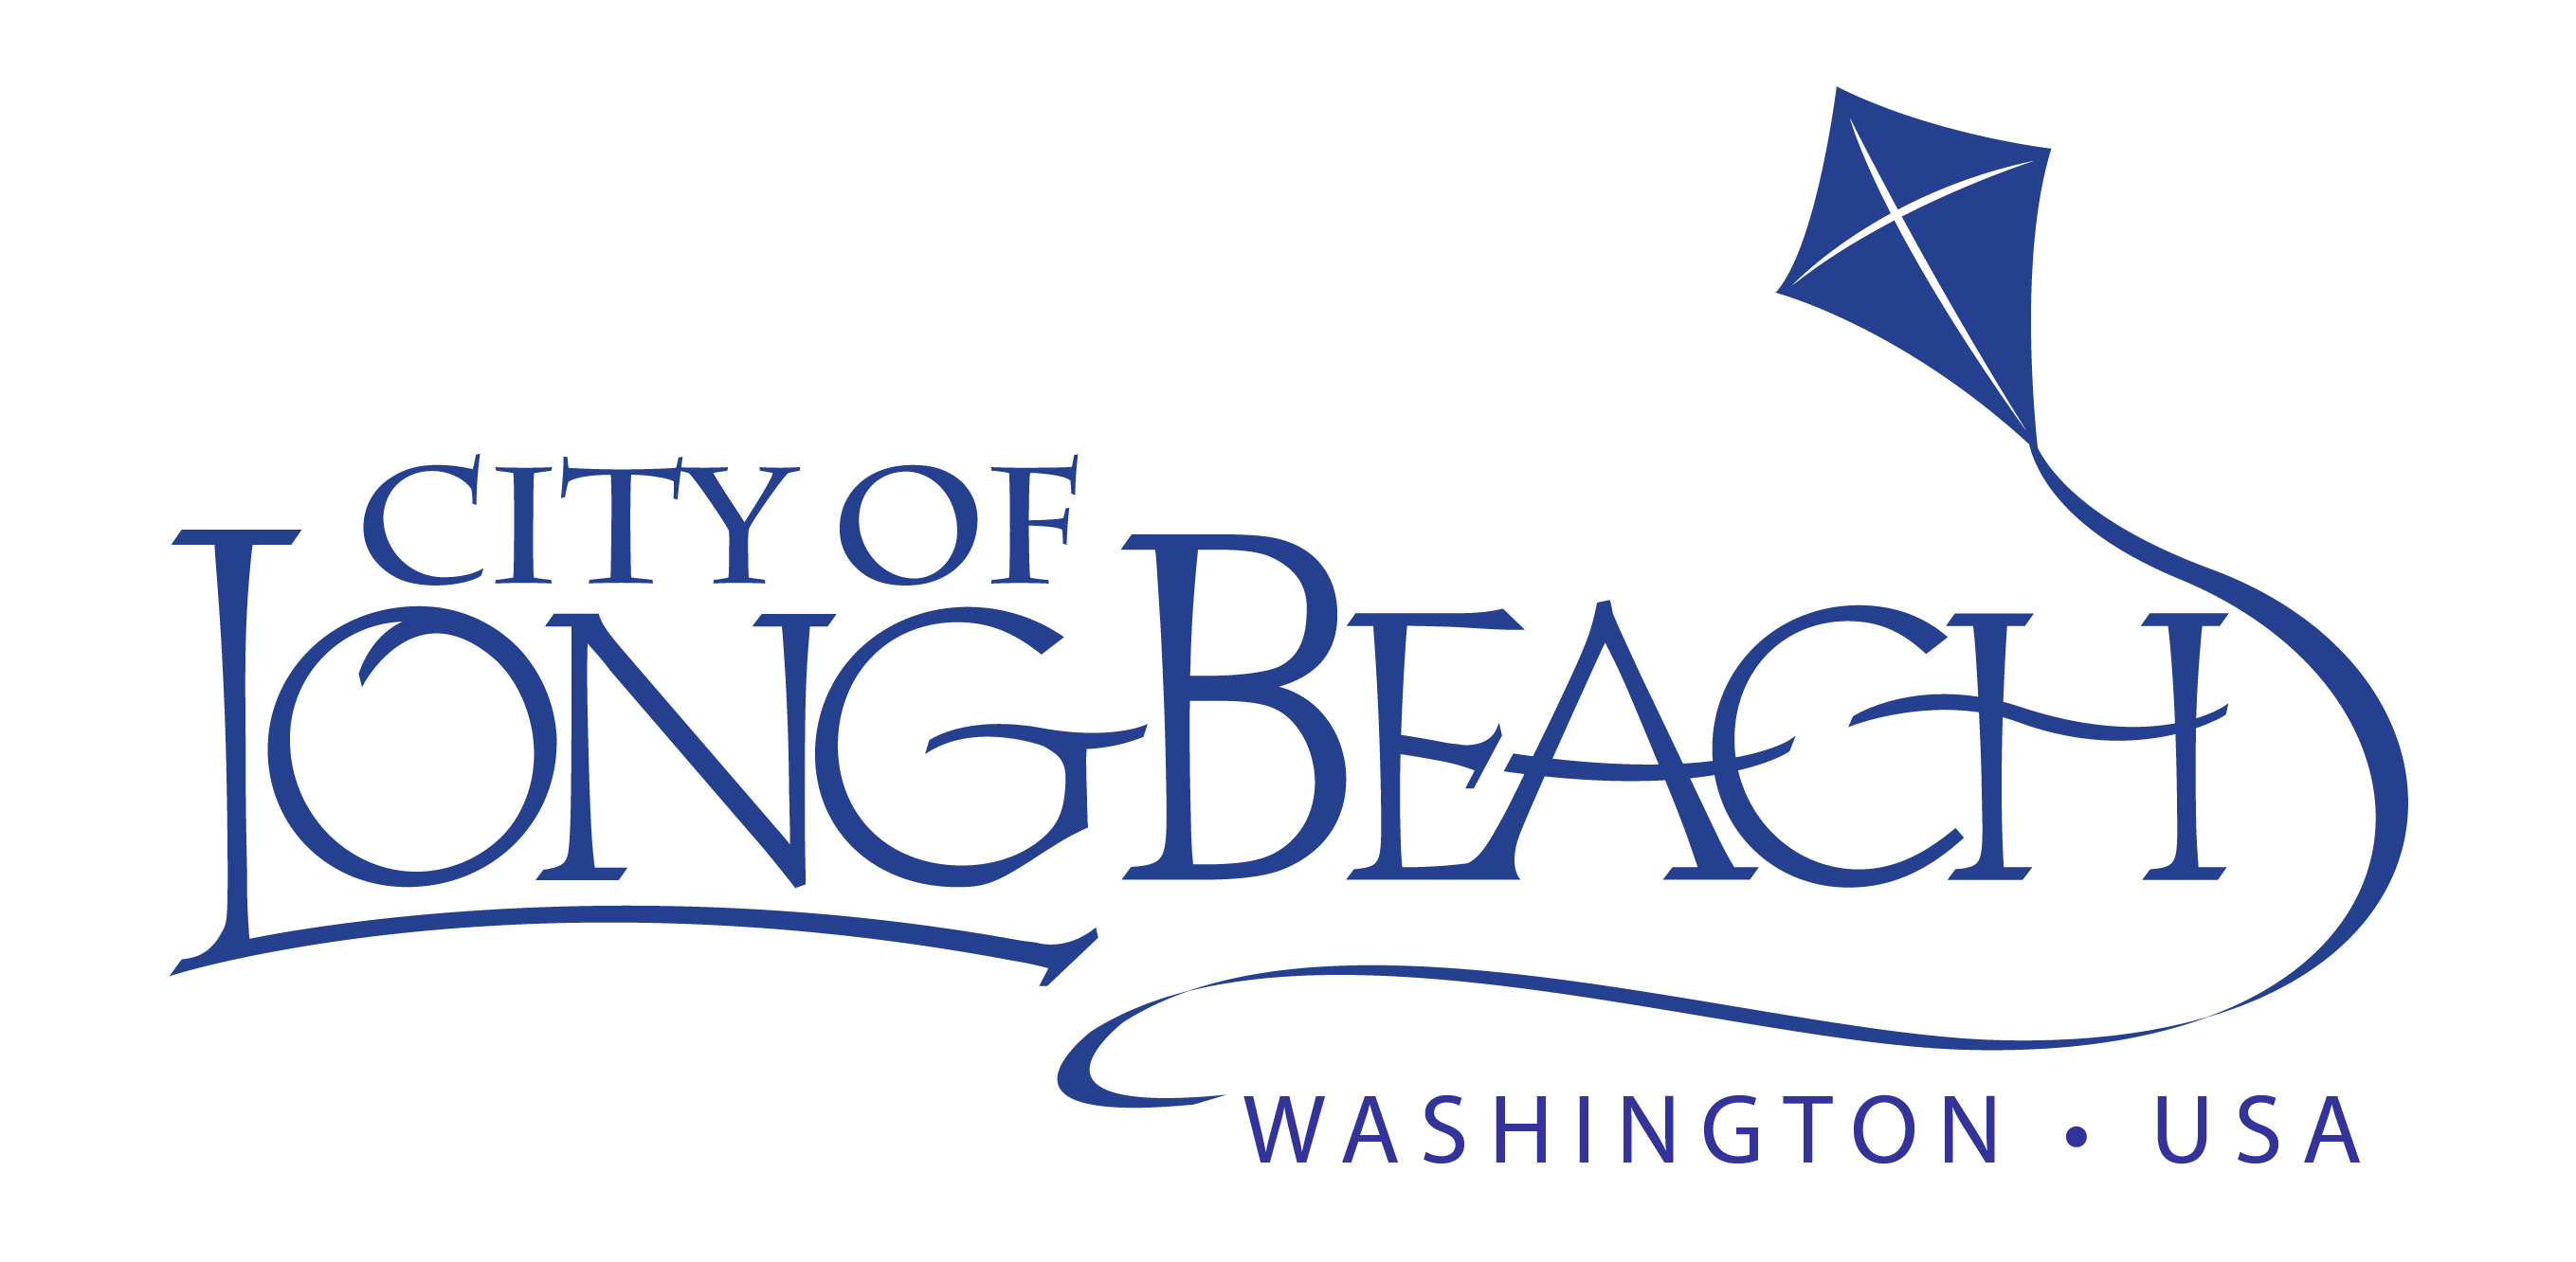 City of Long Beach, Washington